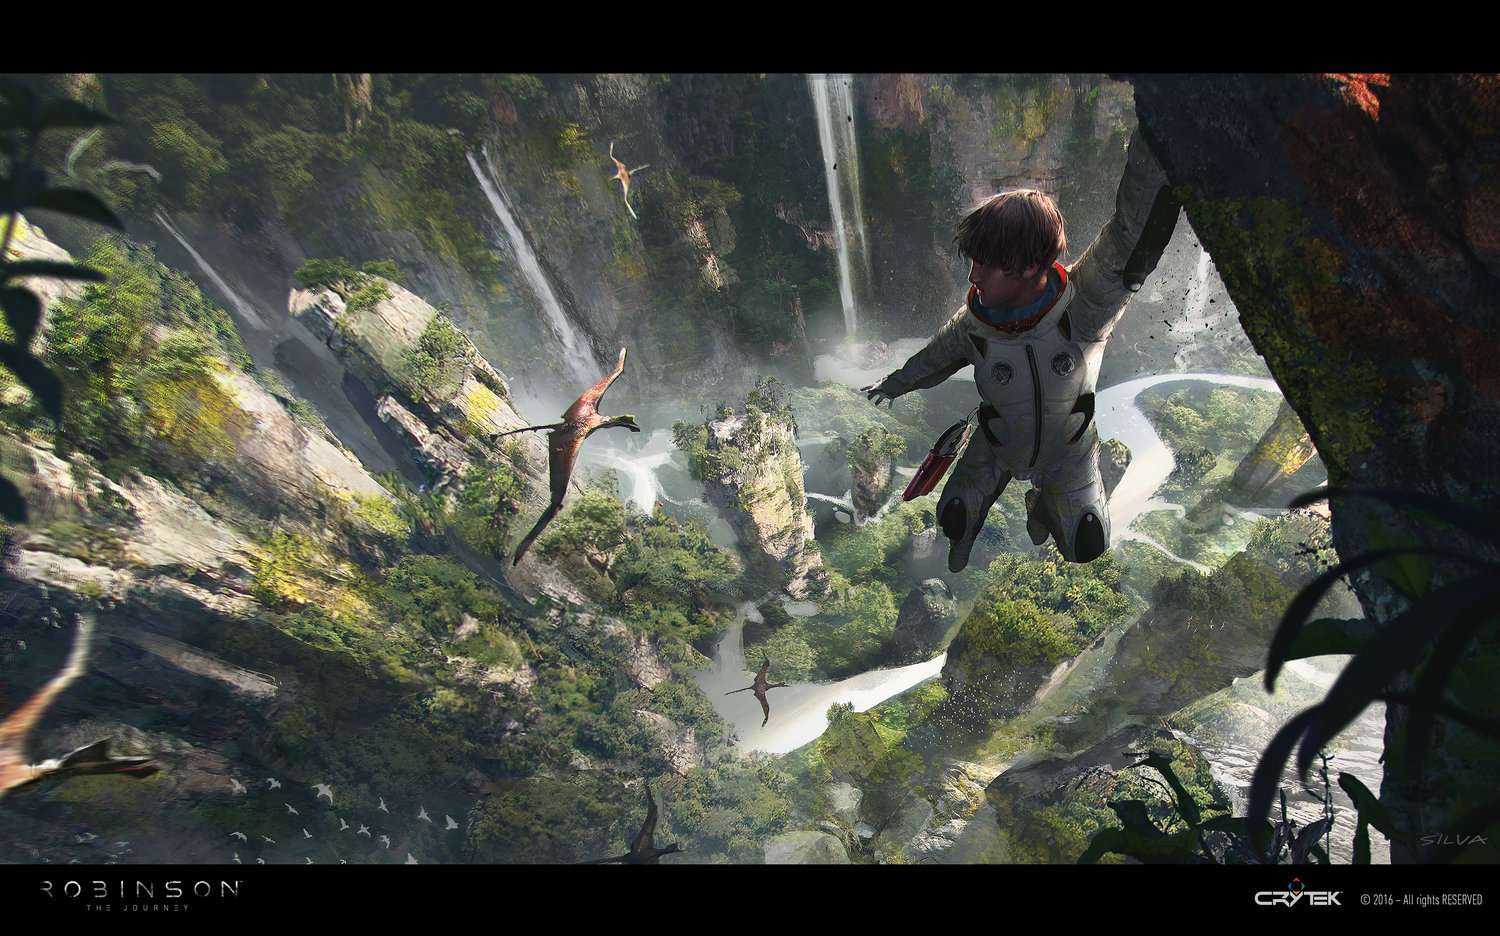 Joao Silva Concept Art - Robinson: The Journey